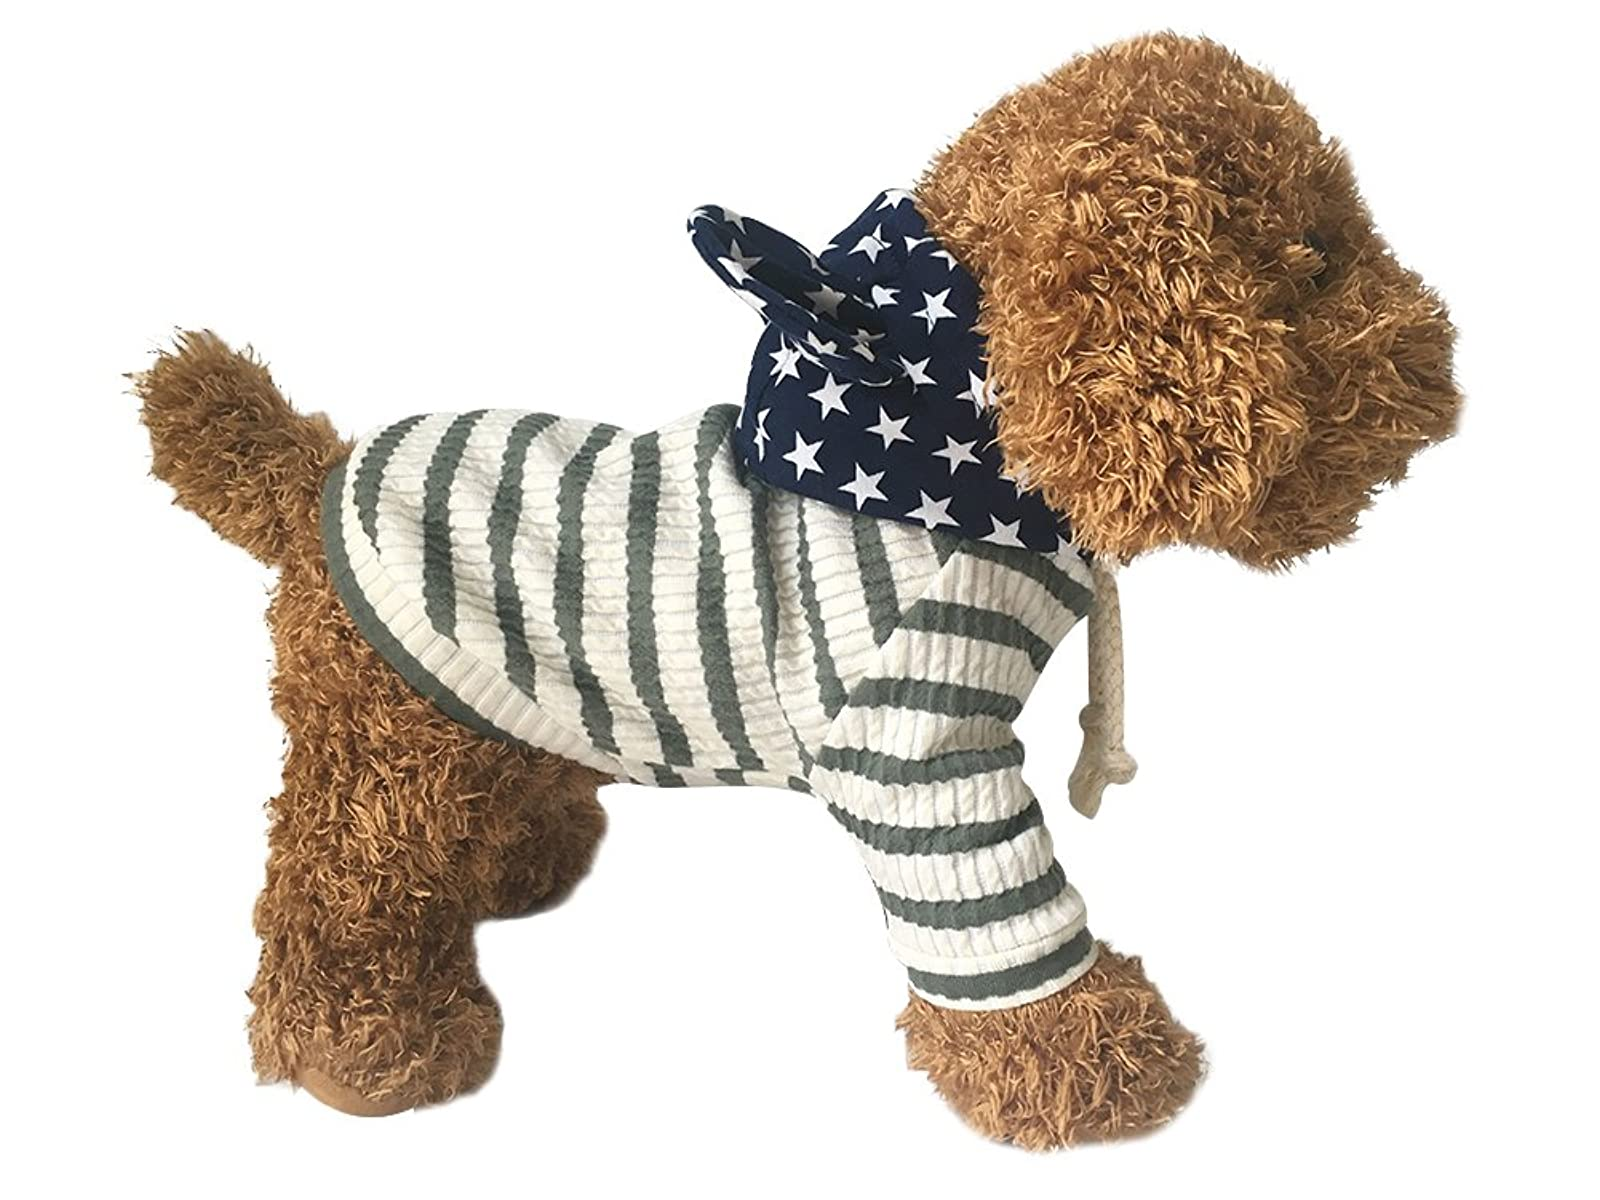 EastCities Pet Clothes Dog HoodiesSmall Dogs CatGreen - 2